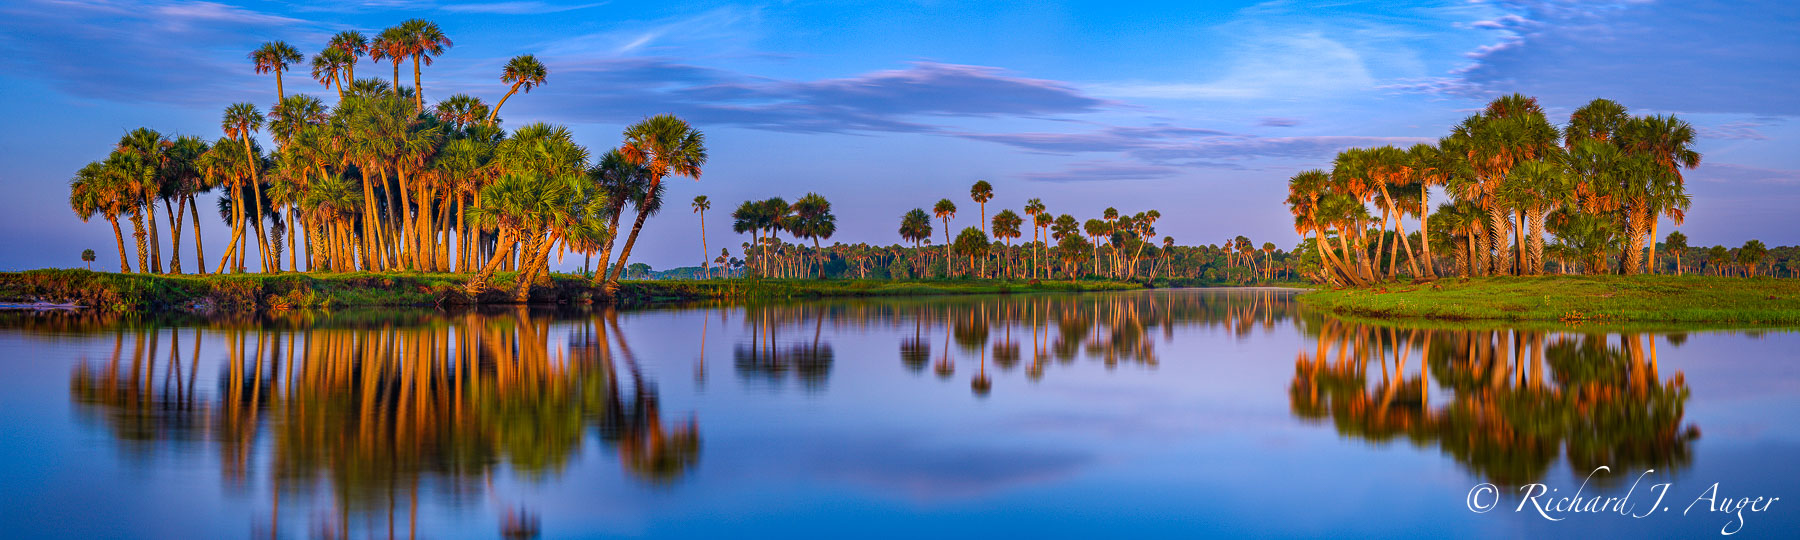 St Johns River, Florida, Orlando, Big Econlockhatchee, Econ, Palm Trees, Purple, Orange, reflections, morning